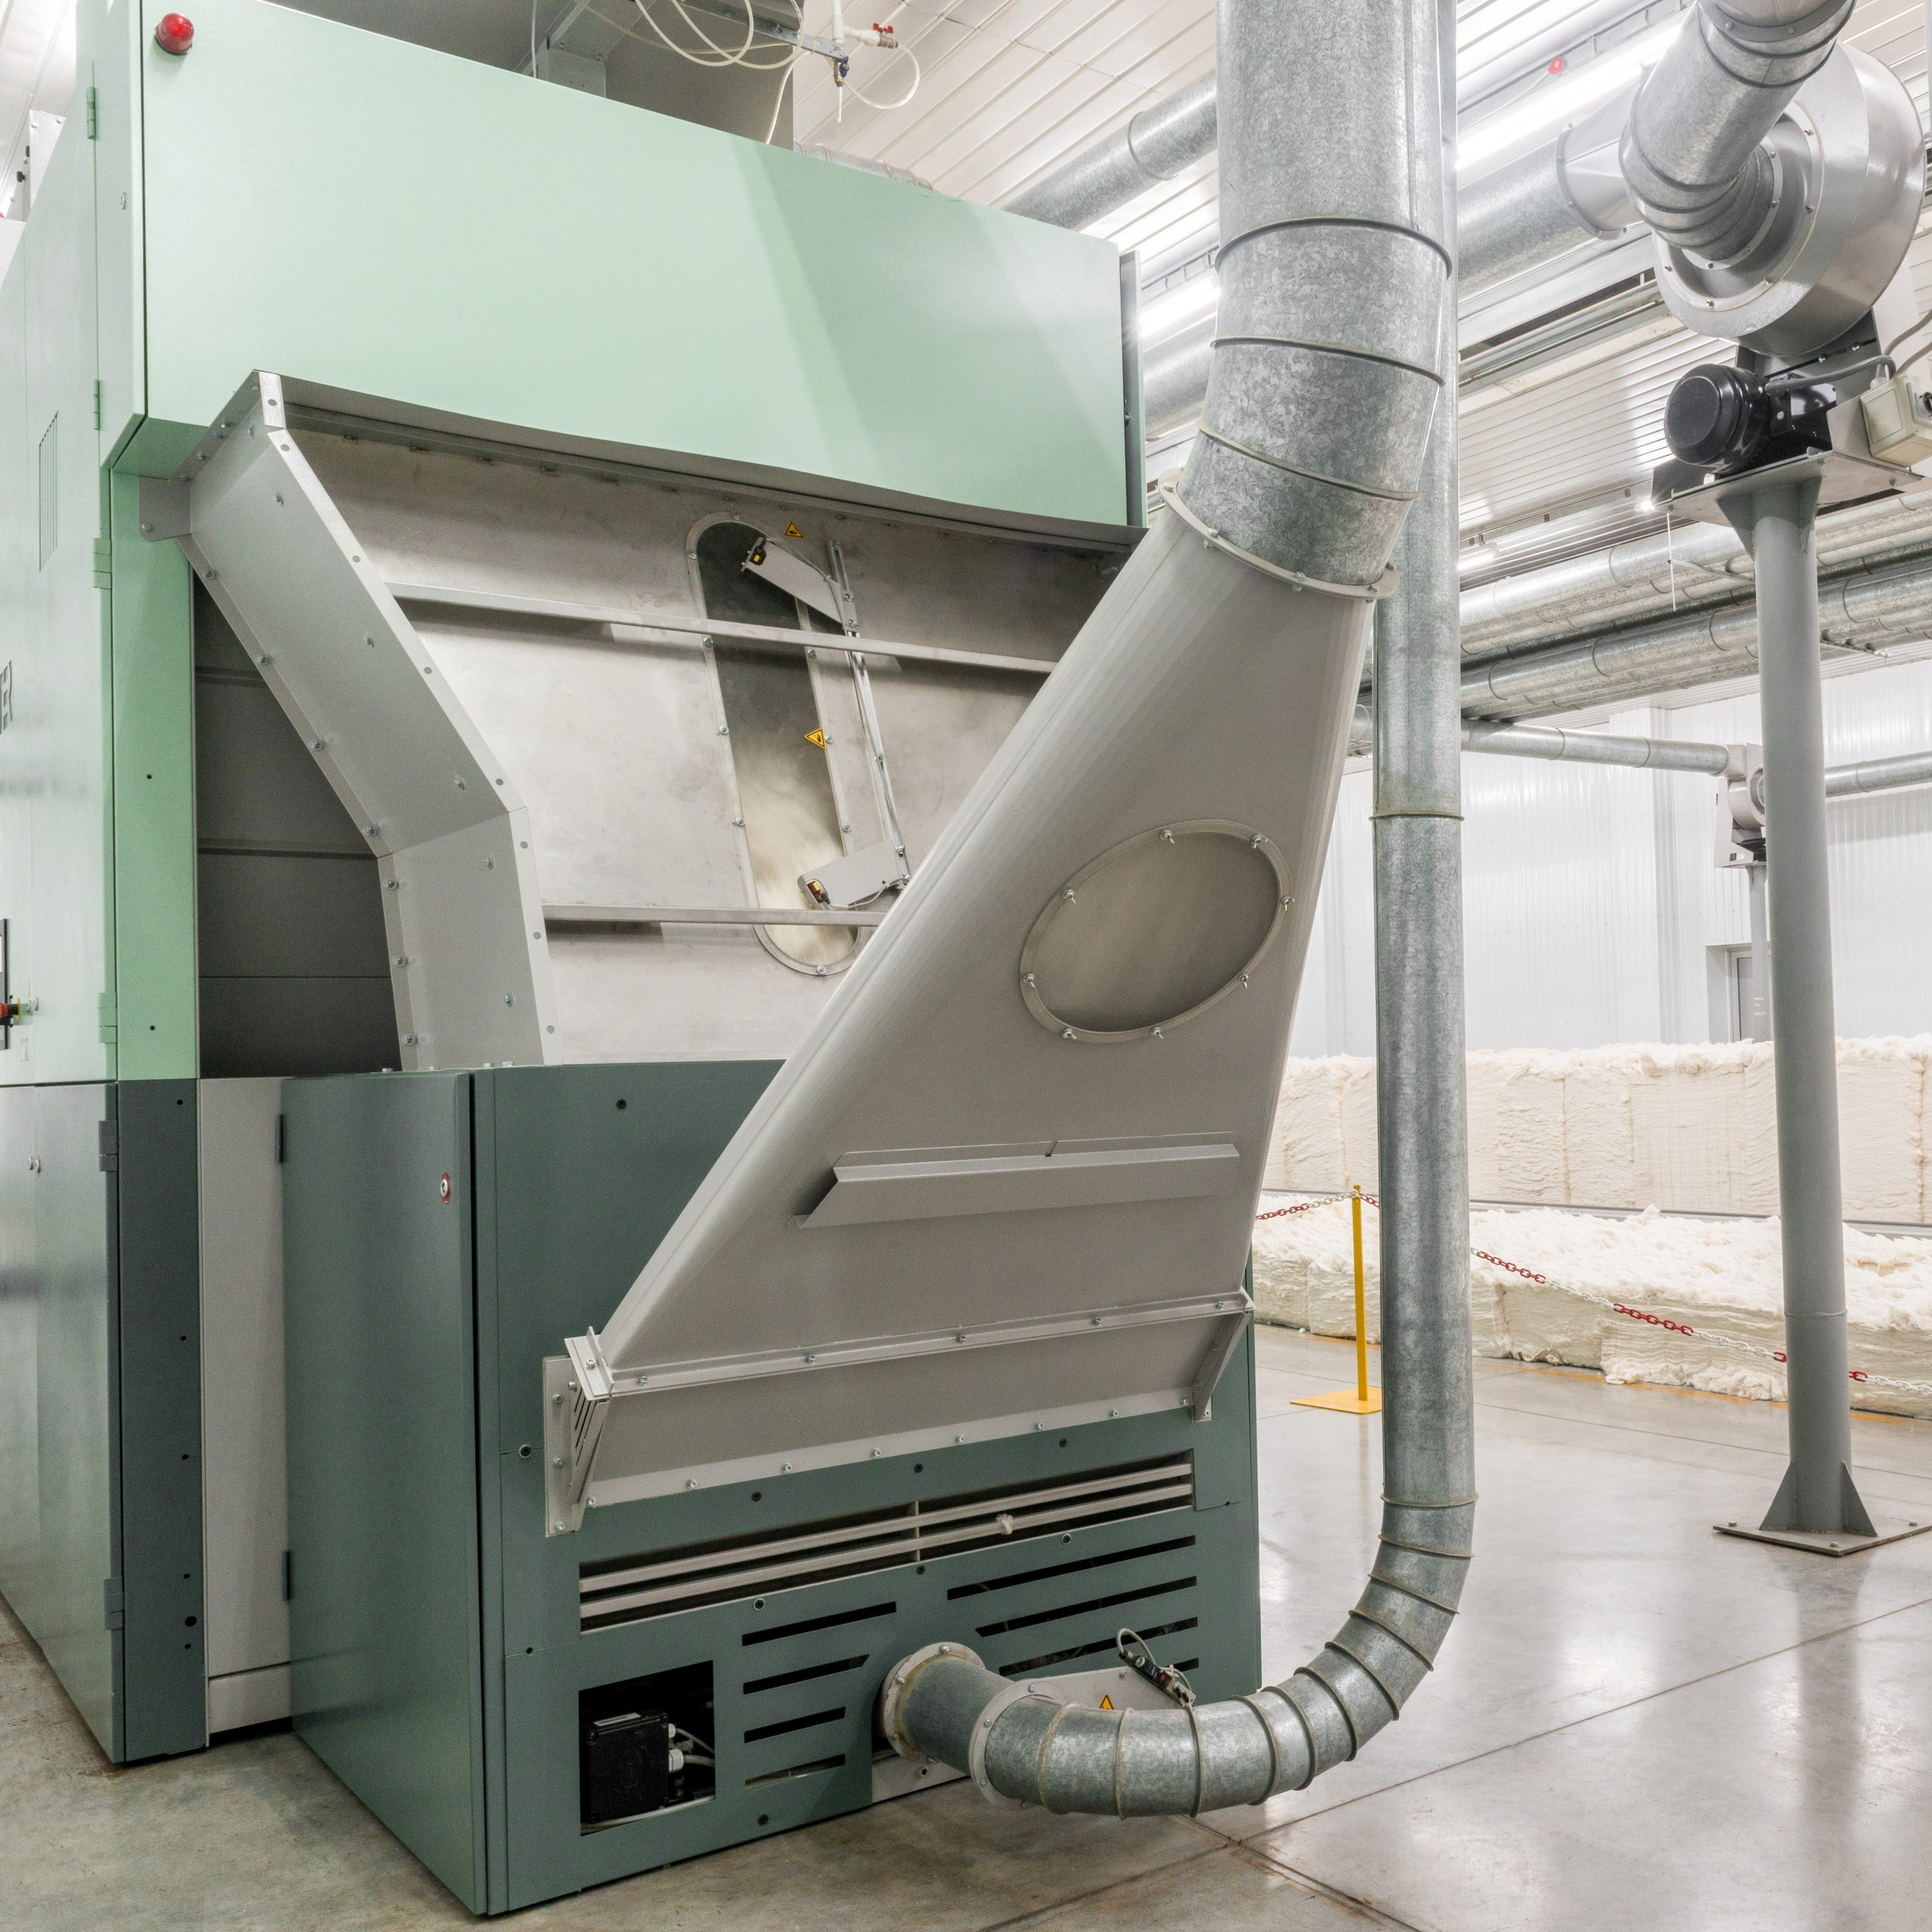 Textile dust extraction